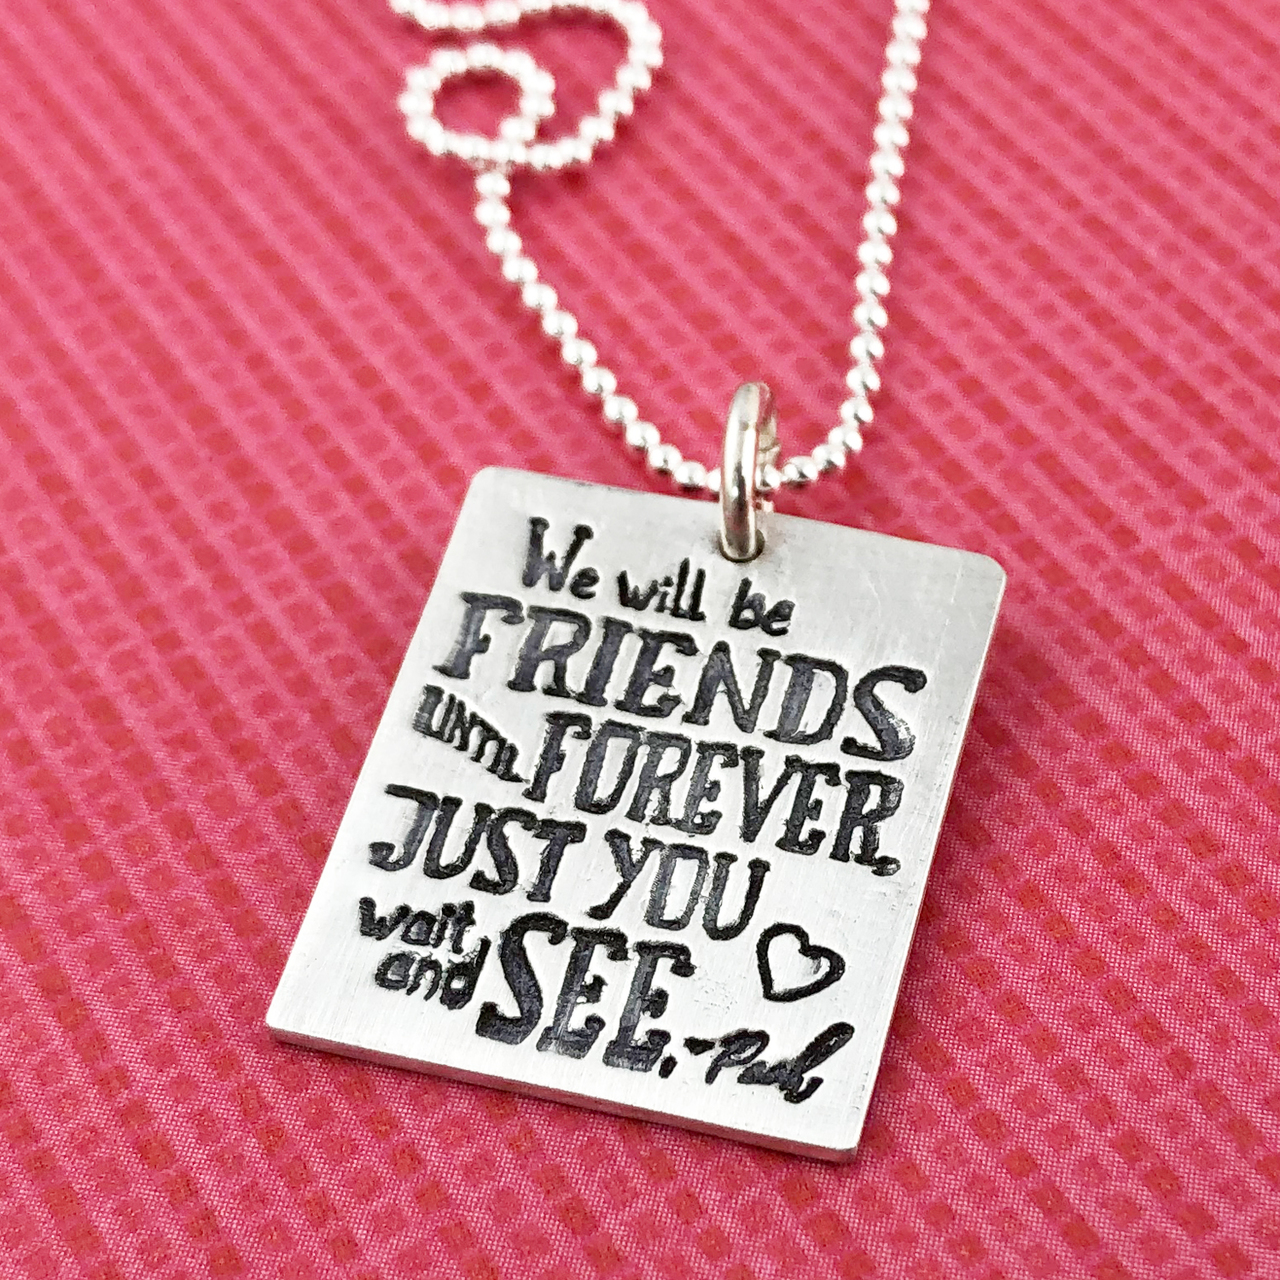 We Will Be Friends Until Forever. Just You Wait and See. - Winnie the Pooh Inspirational Quote Necklace (Ready to Ship)